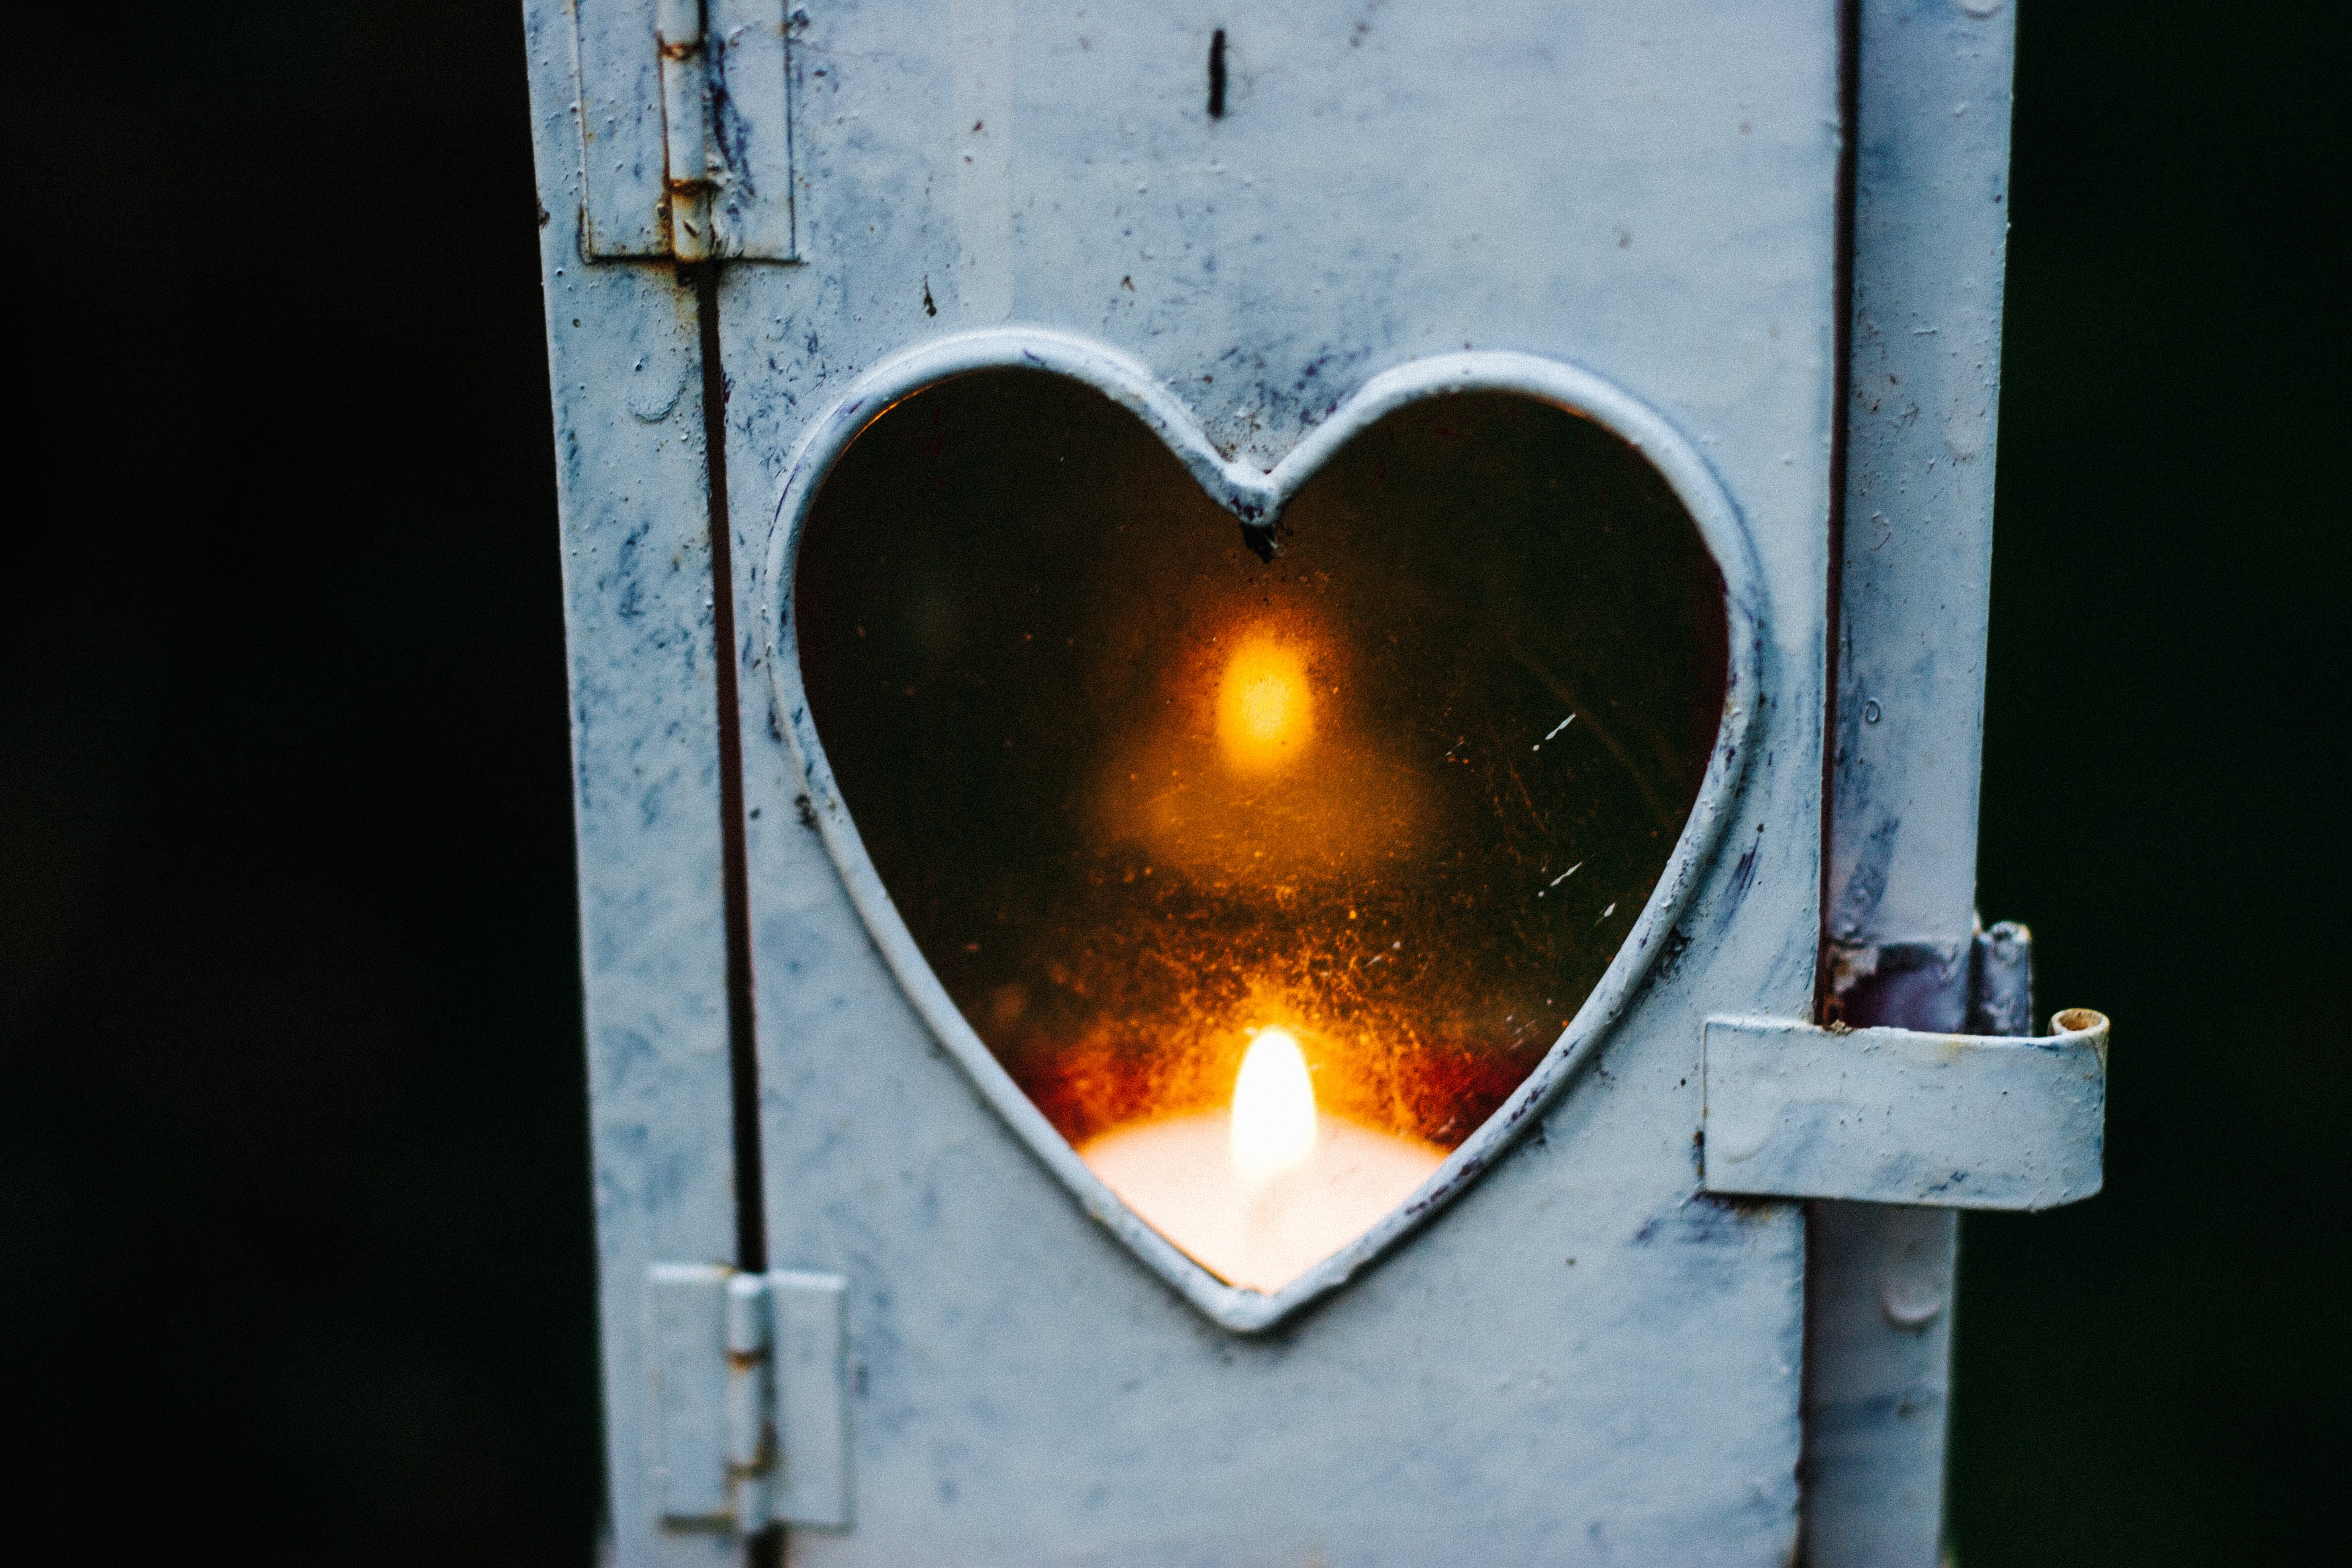 Funky metal lantern with a heart-shaped window illuminated by candle